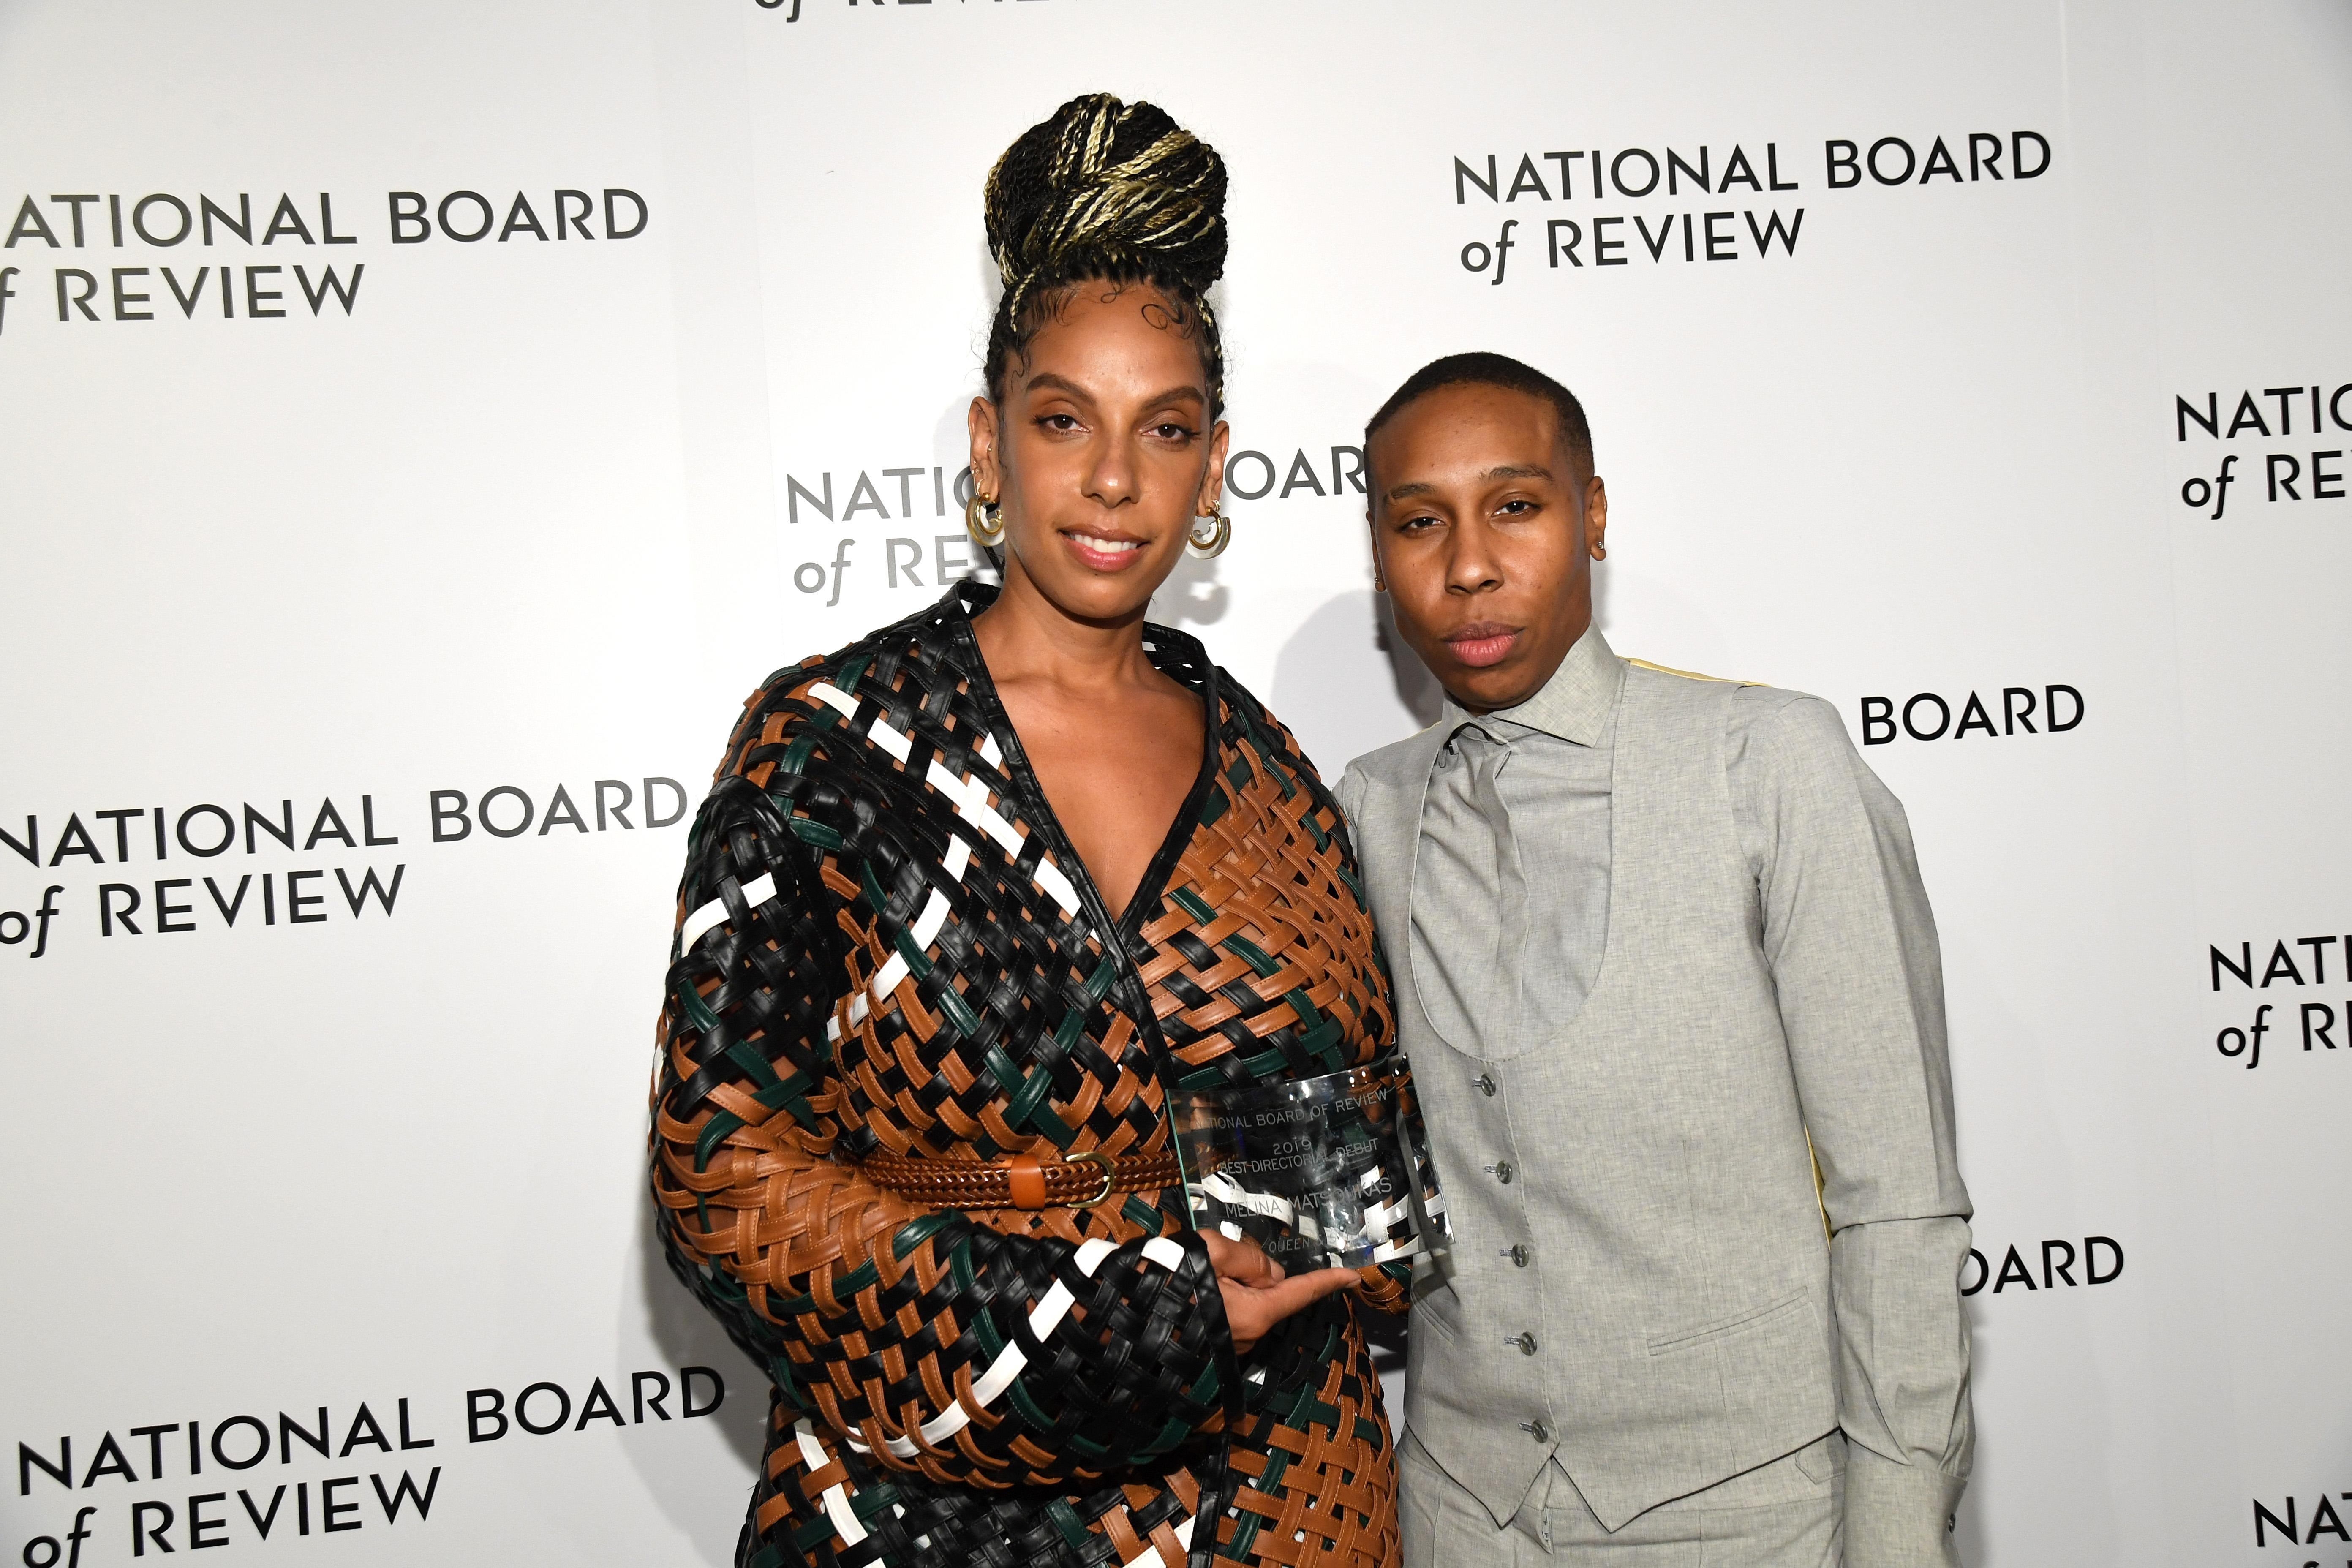 Melina Matsoukas and Lena Waithe attend The National Board of Review Annual Awards Gala on January 8, 2020. (Photo by Kevin Mazur/Getty Images for National Board of Review)